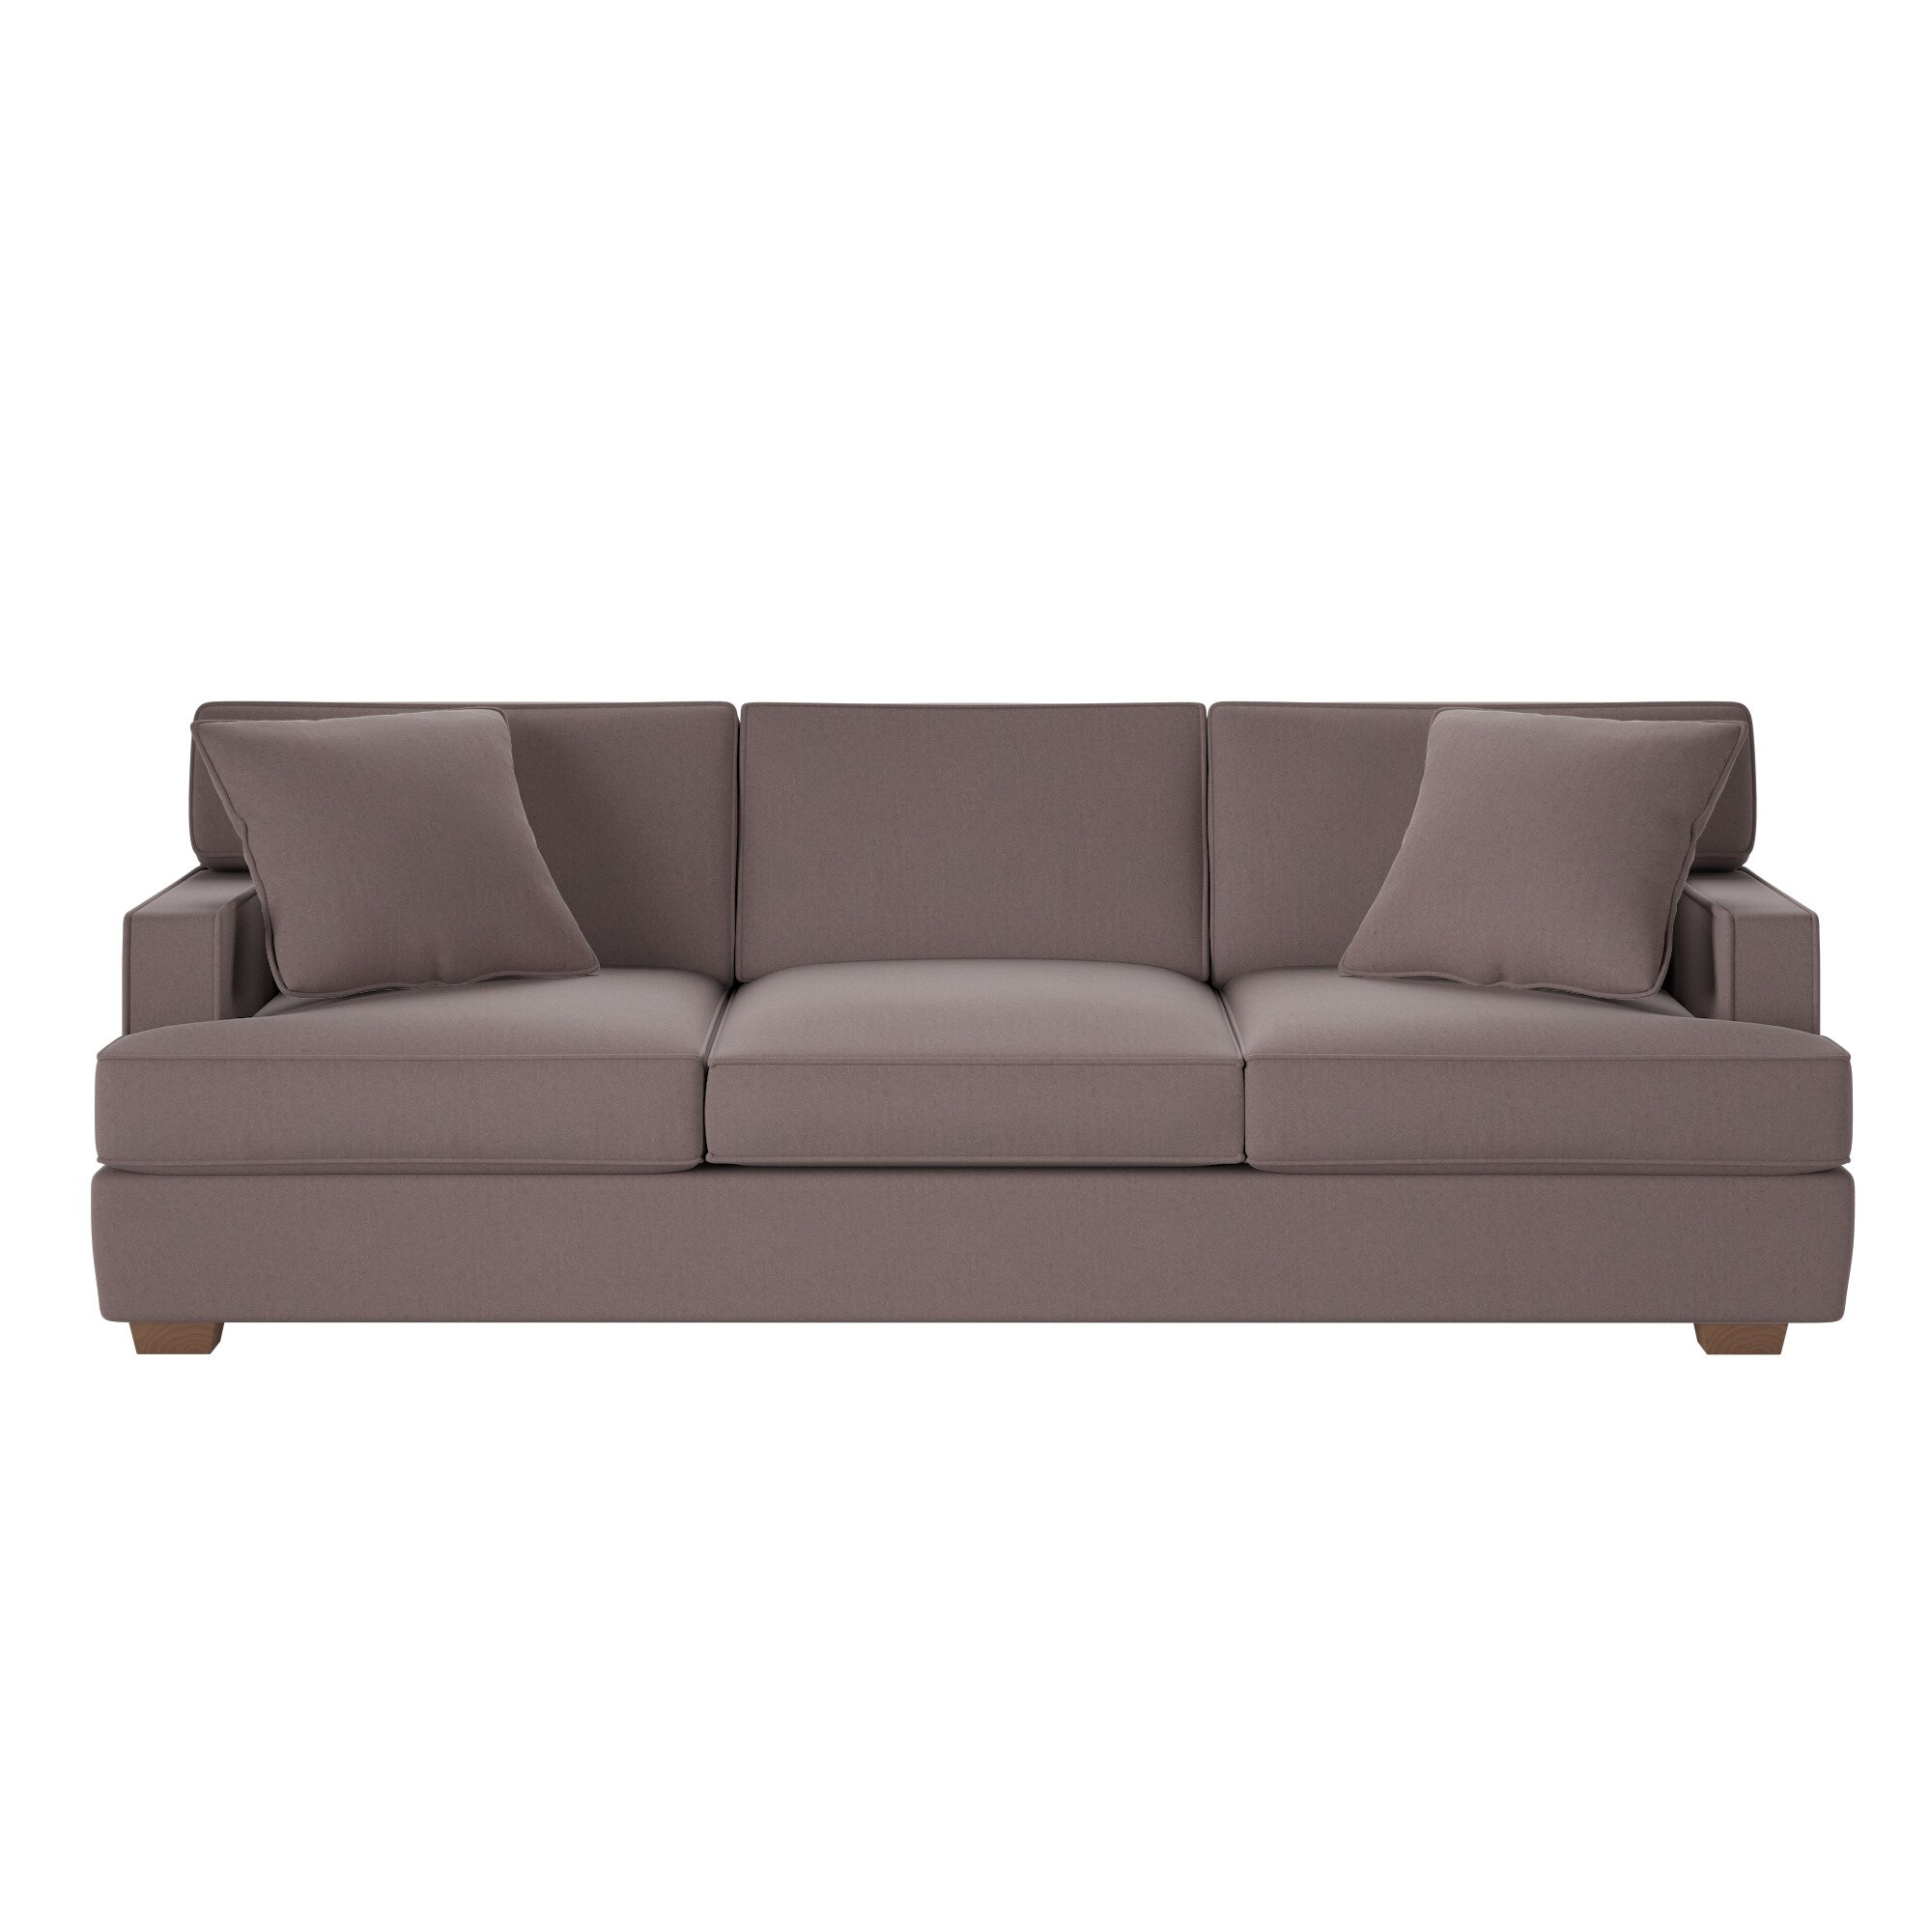 Wayfair Custom Upholstery Avery Sofa Reviews